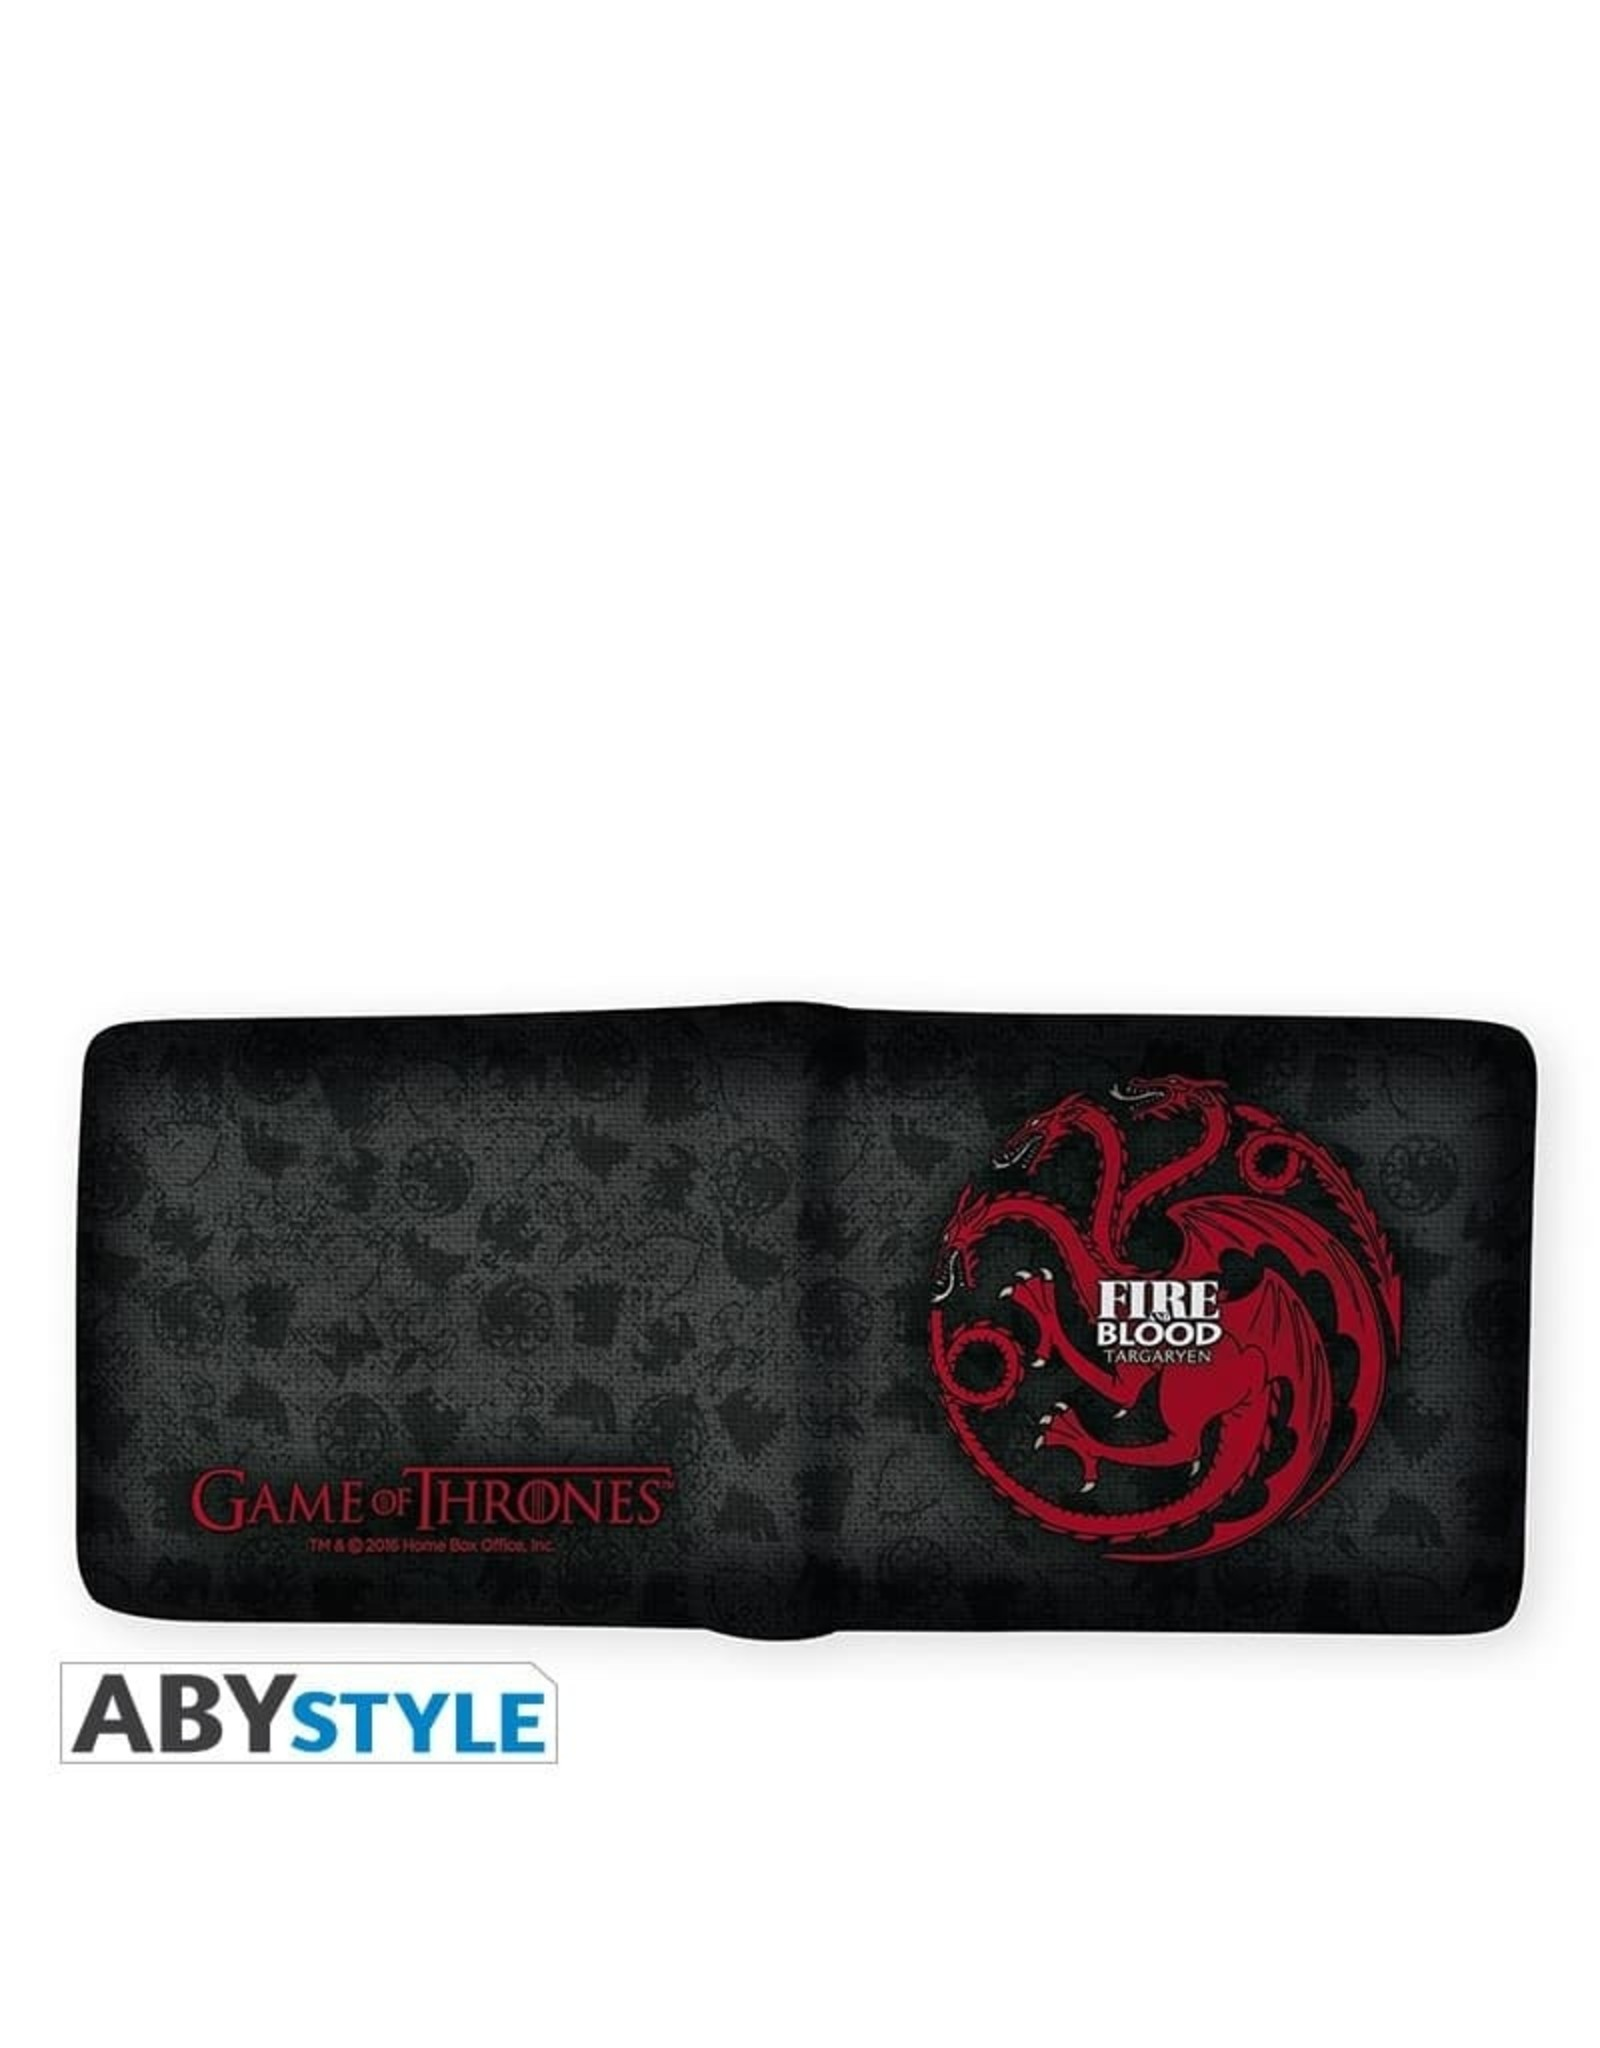 Game of Thrones Merchandise portemonnees - Game of Thrones Targaryen portemonnee